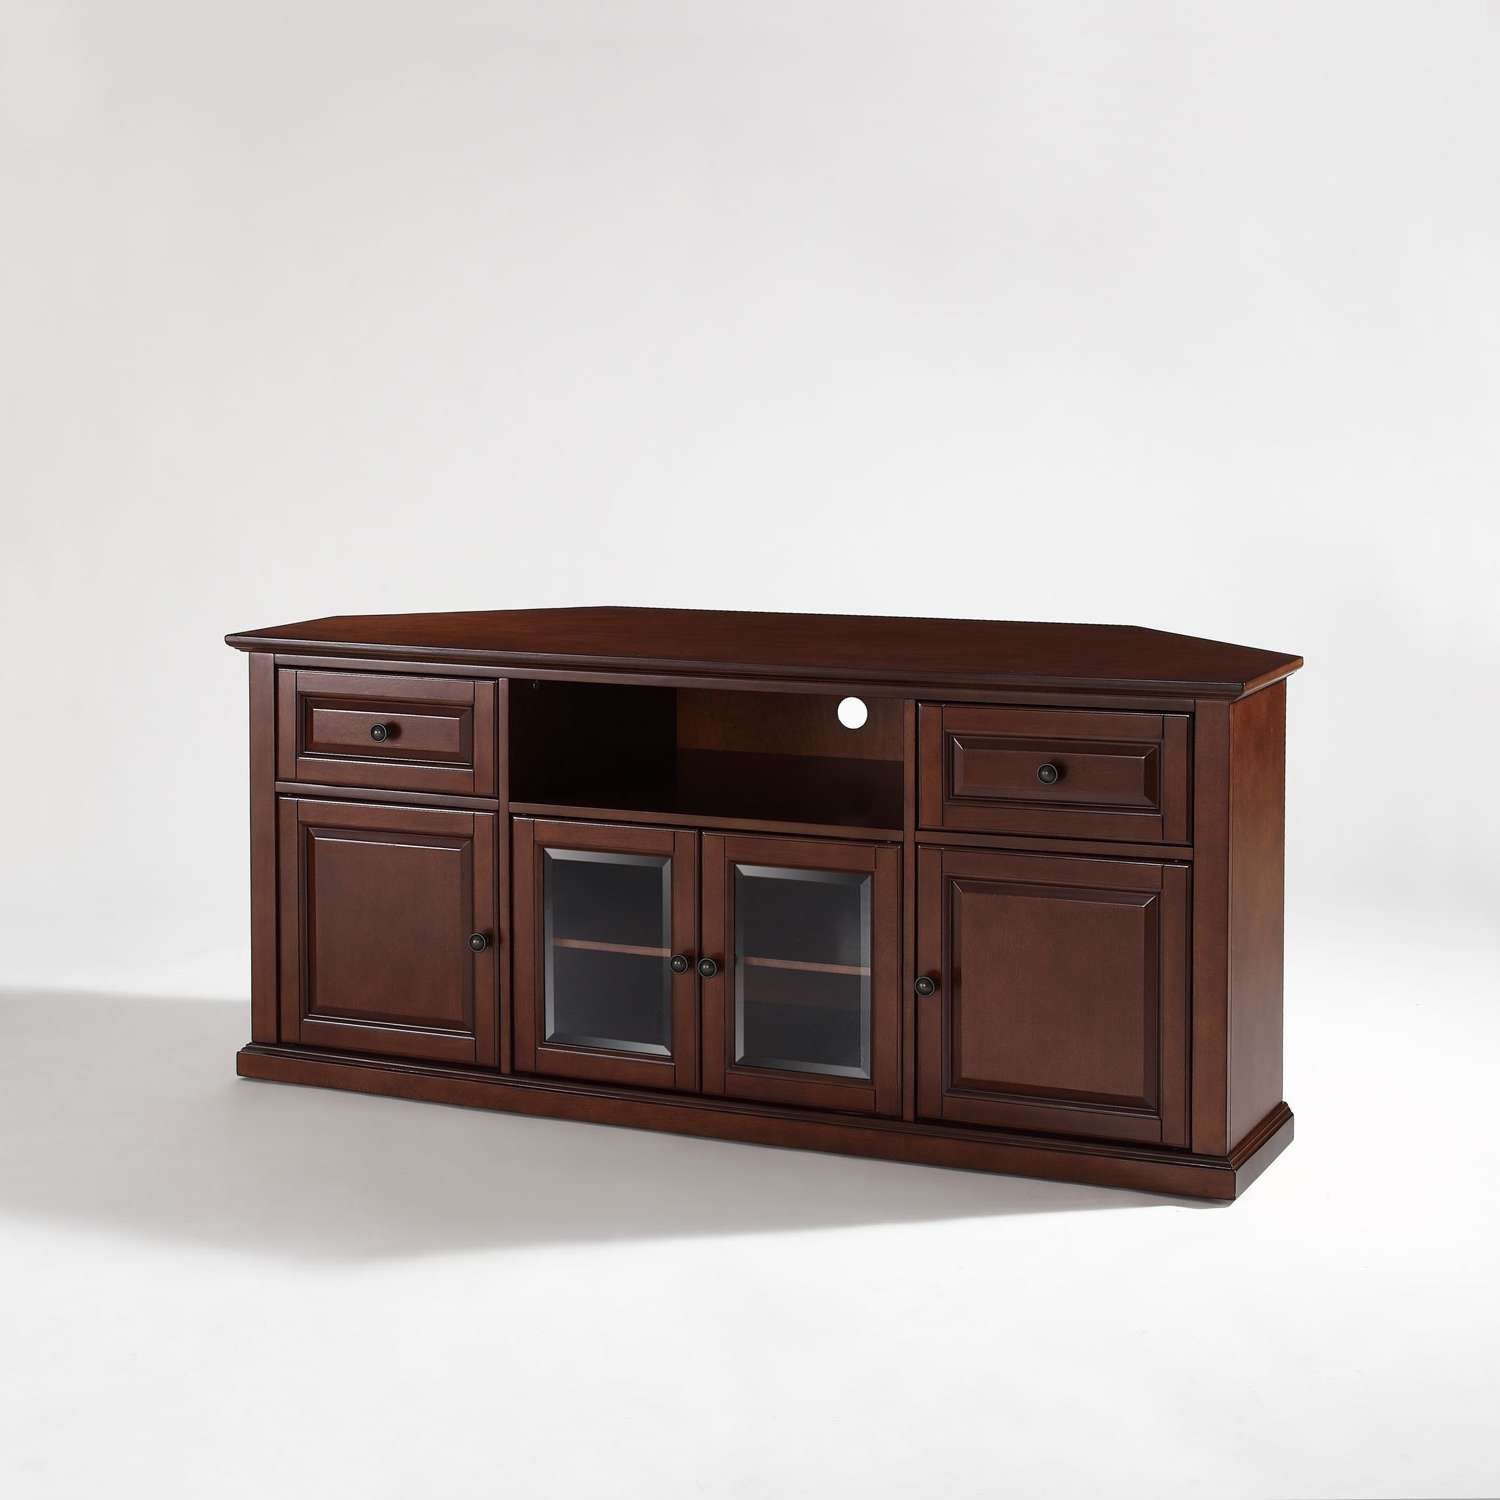 60 Inch Corner Tv Stand In Vintage Mahogany Crosley Furniture Regarding Corner Tv Stands (View 2 of 15)